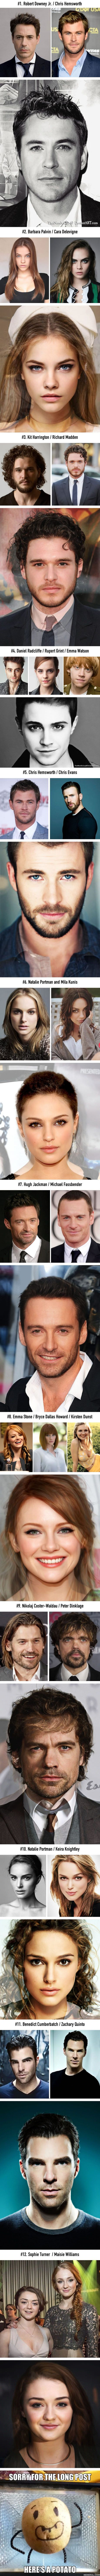 Celebrity Face Mashups (By ThatNordicGuy)